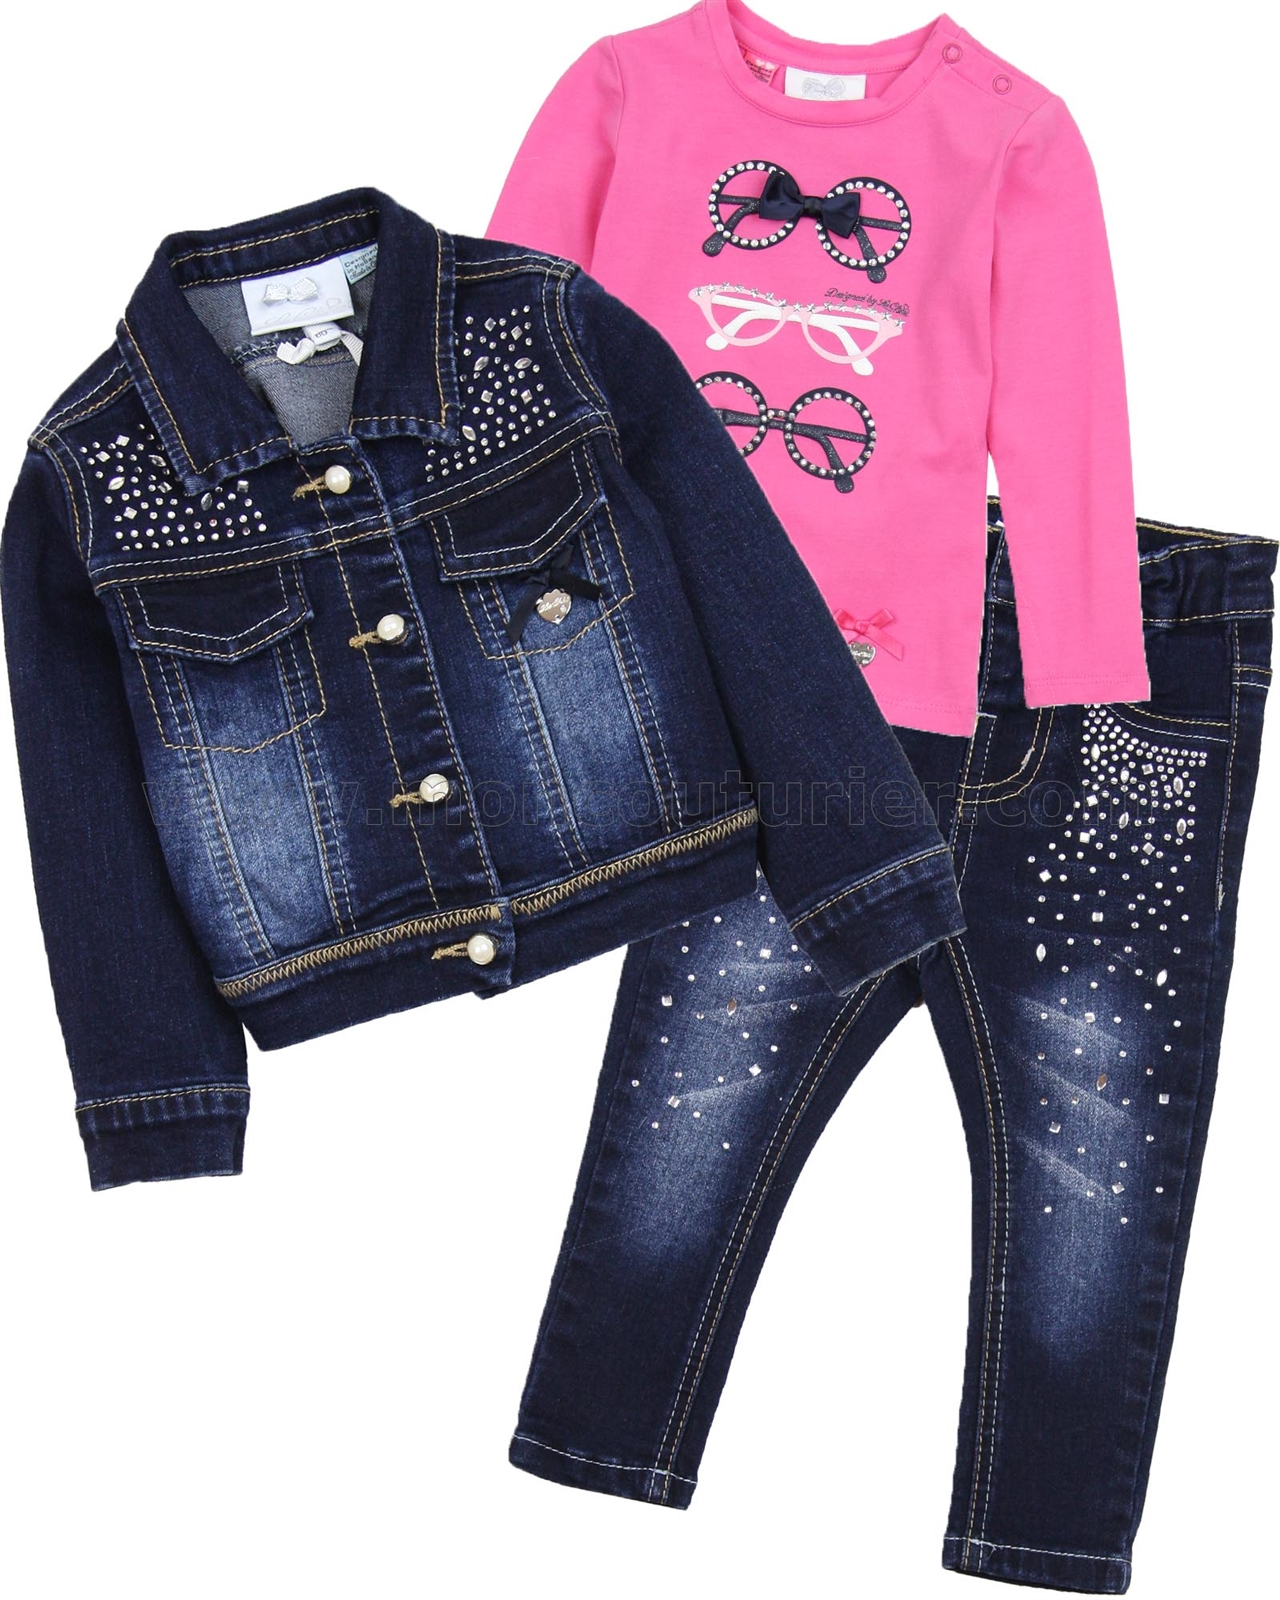 Le Chic Baby T-shirt, Denim Jacket and Pants Set - Le Chic ...